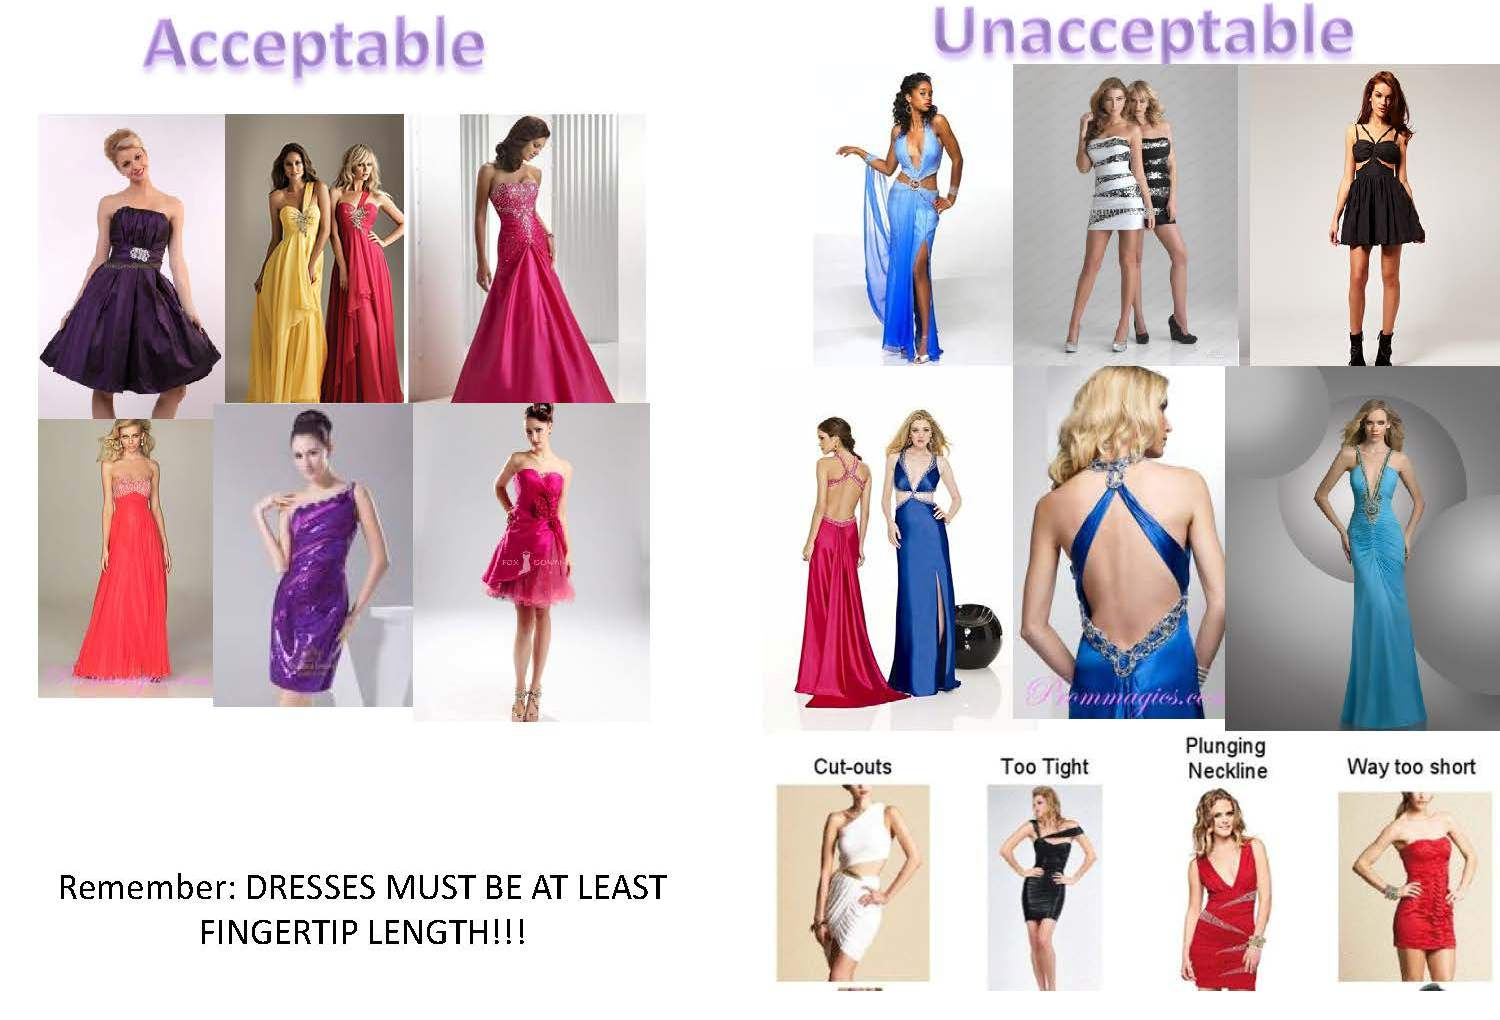 Dance dress guide 2011